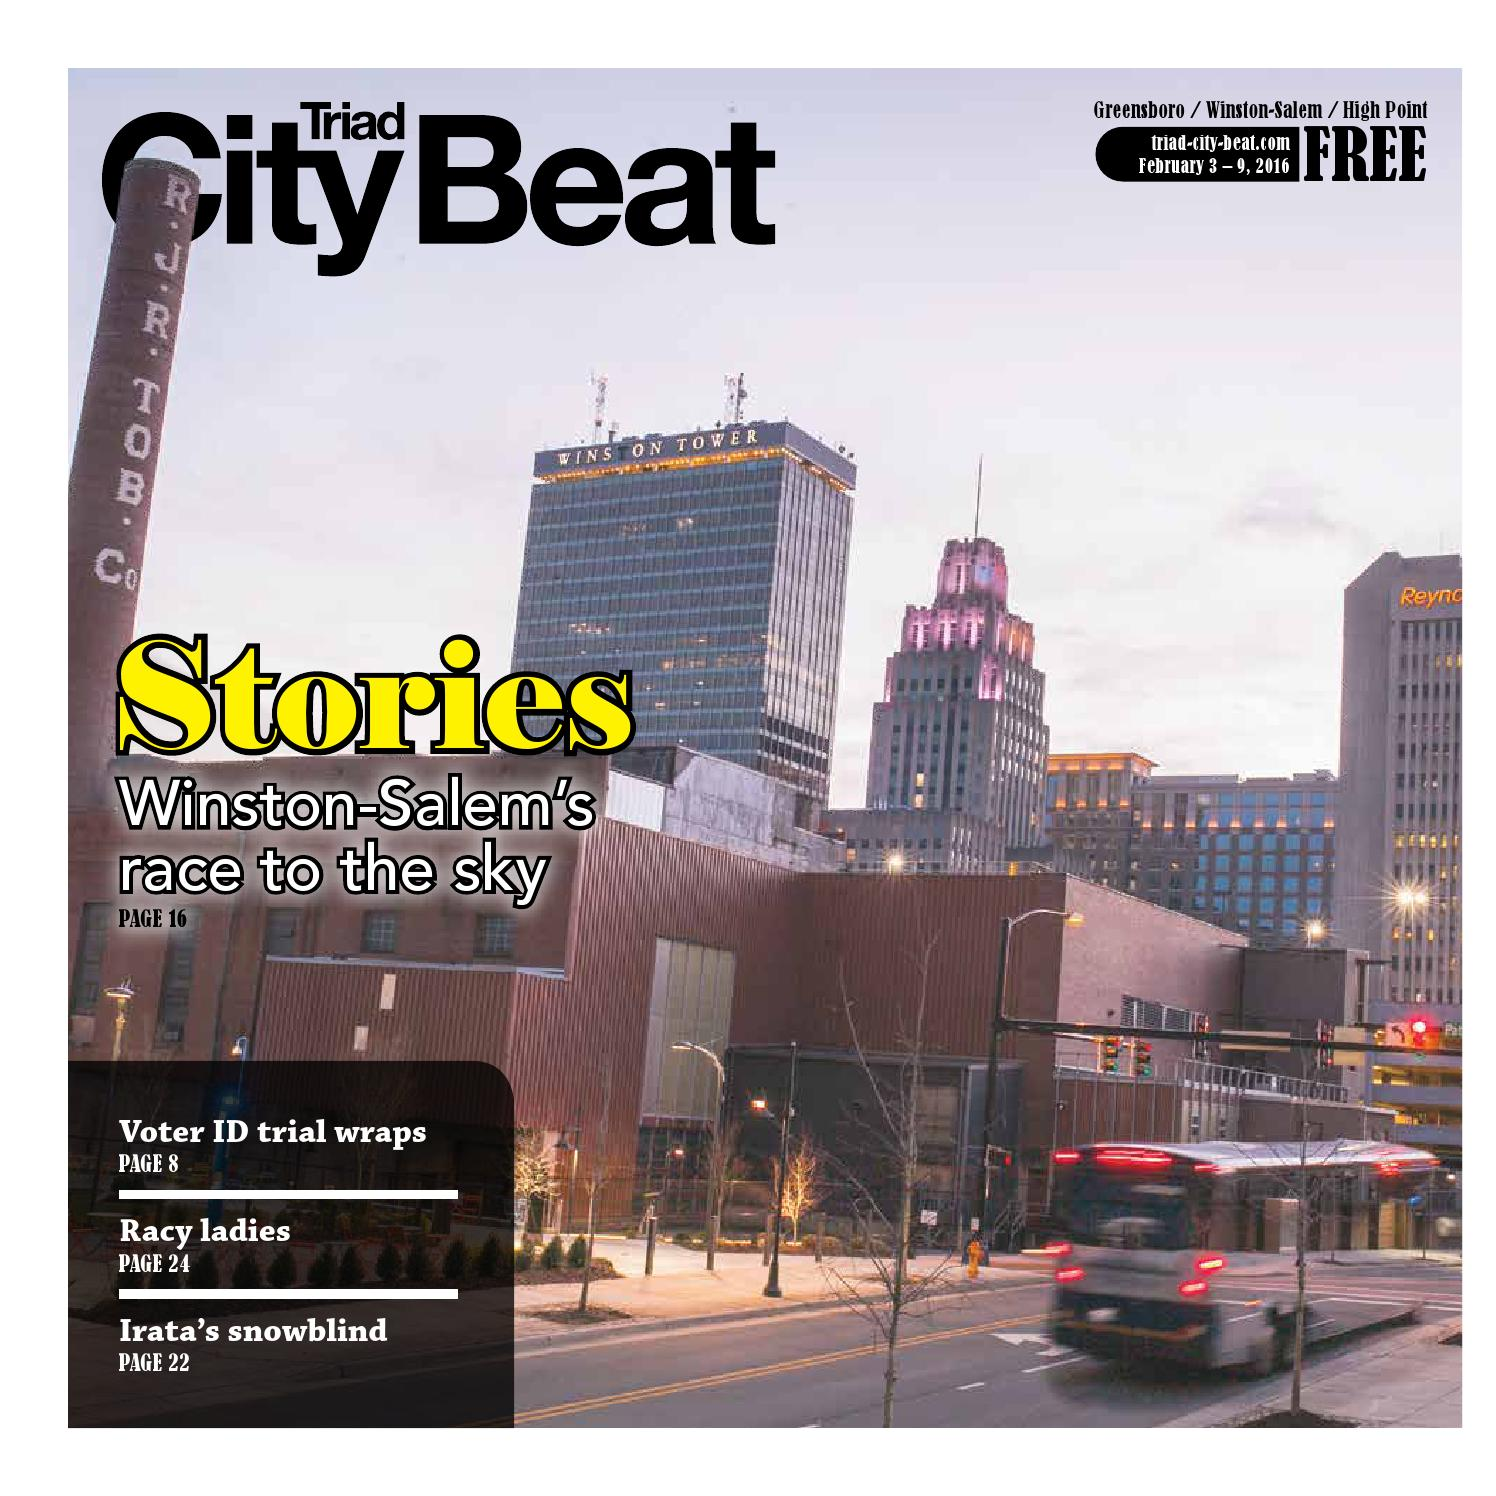 Madison Erects Giant Phallic Tower To >> Tcb Feb 3 2016 Stories Winston Salem S Race To The Sky By Triad